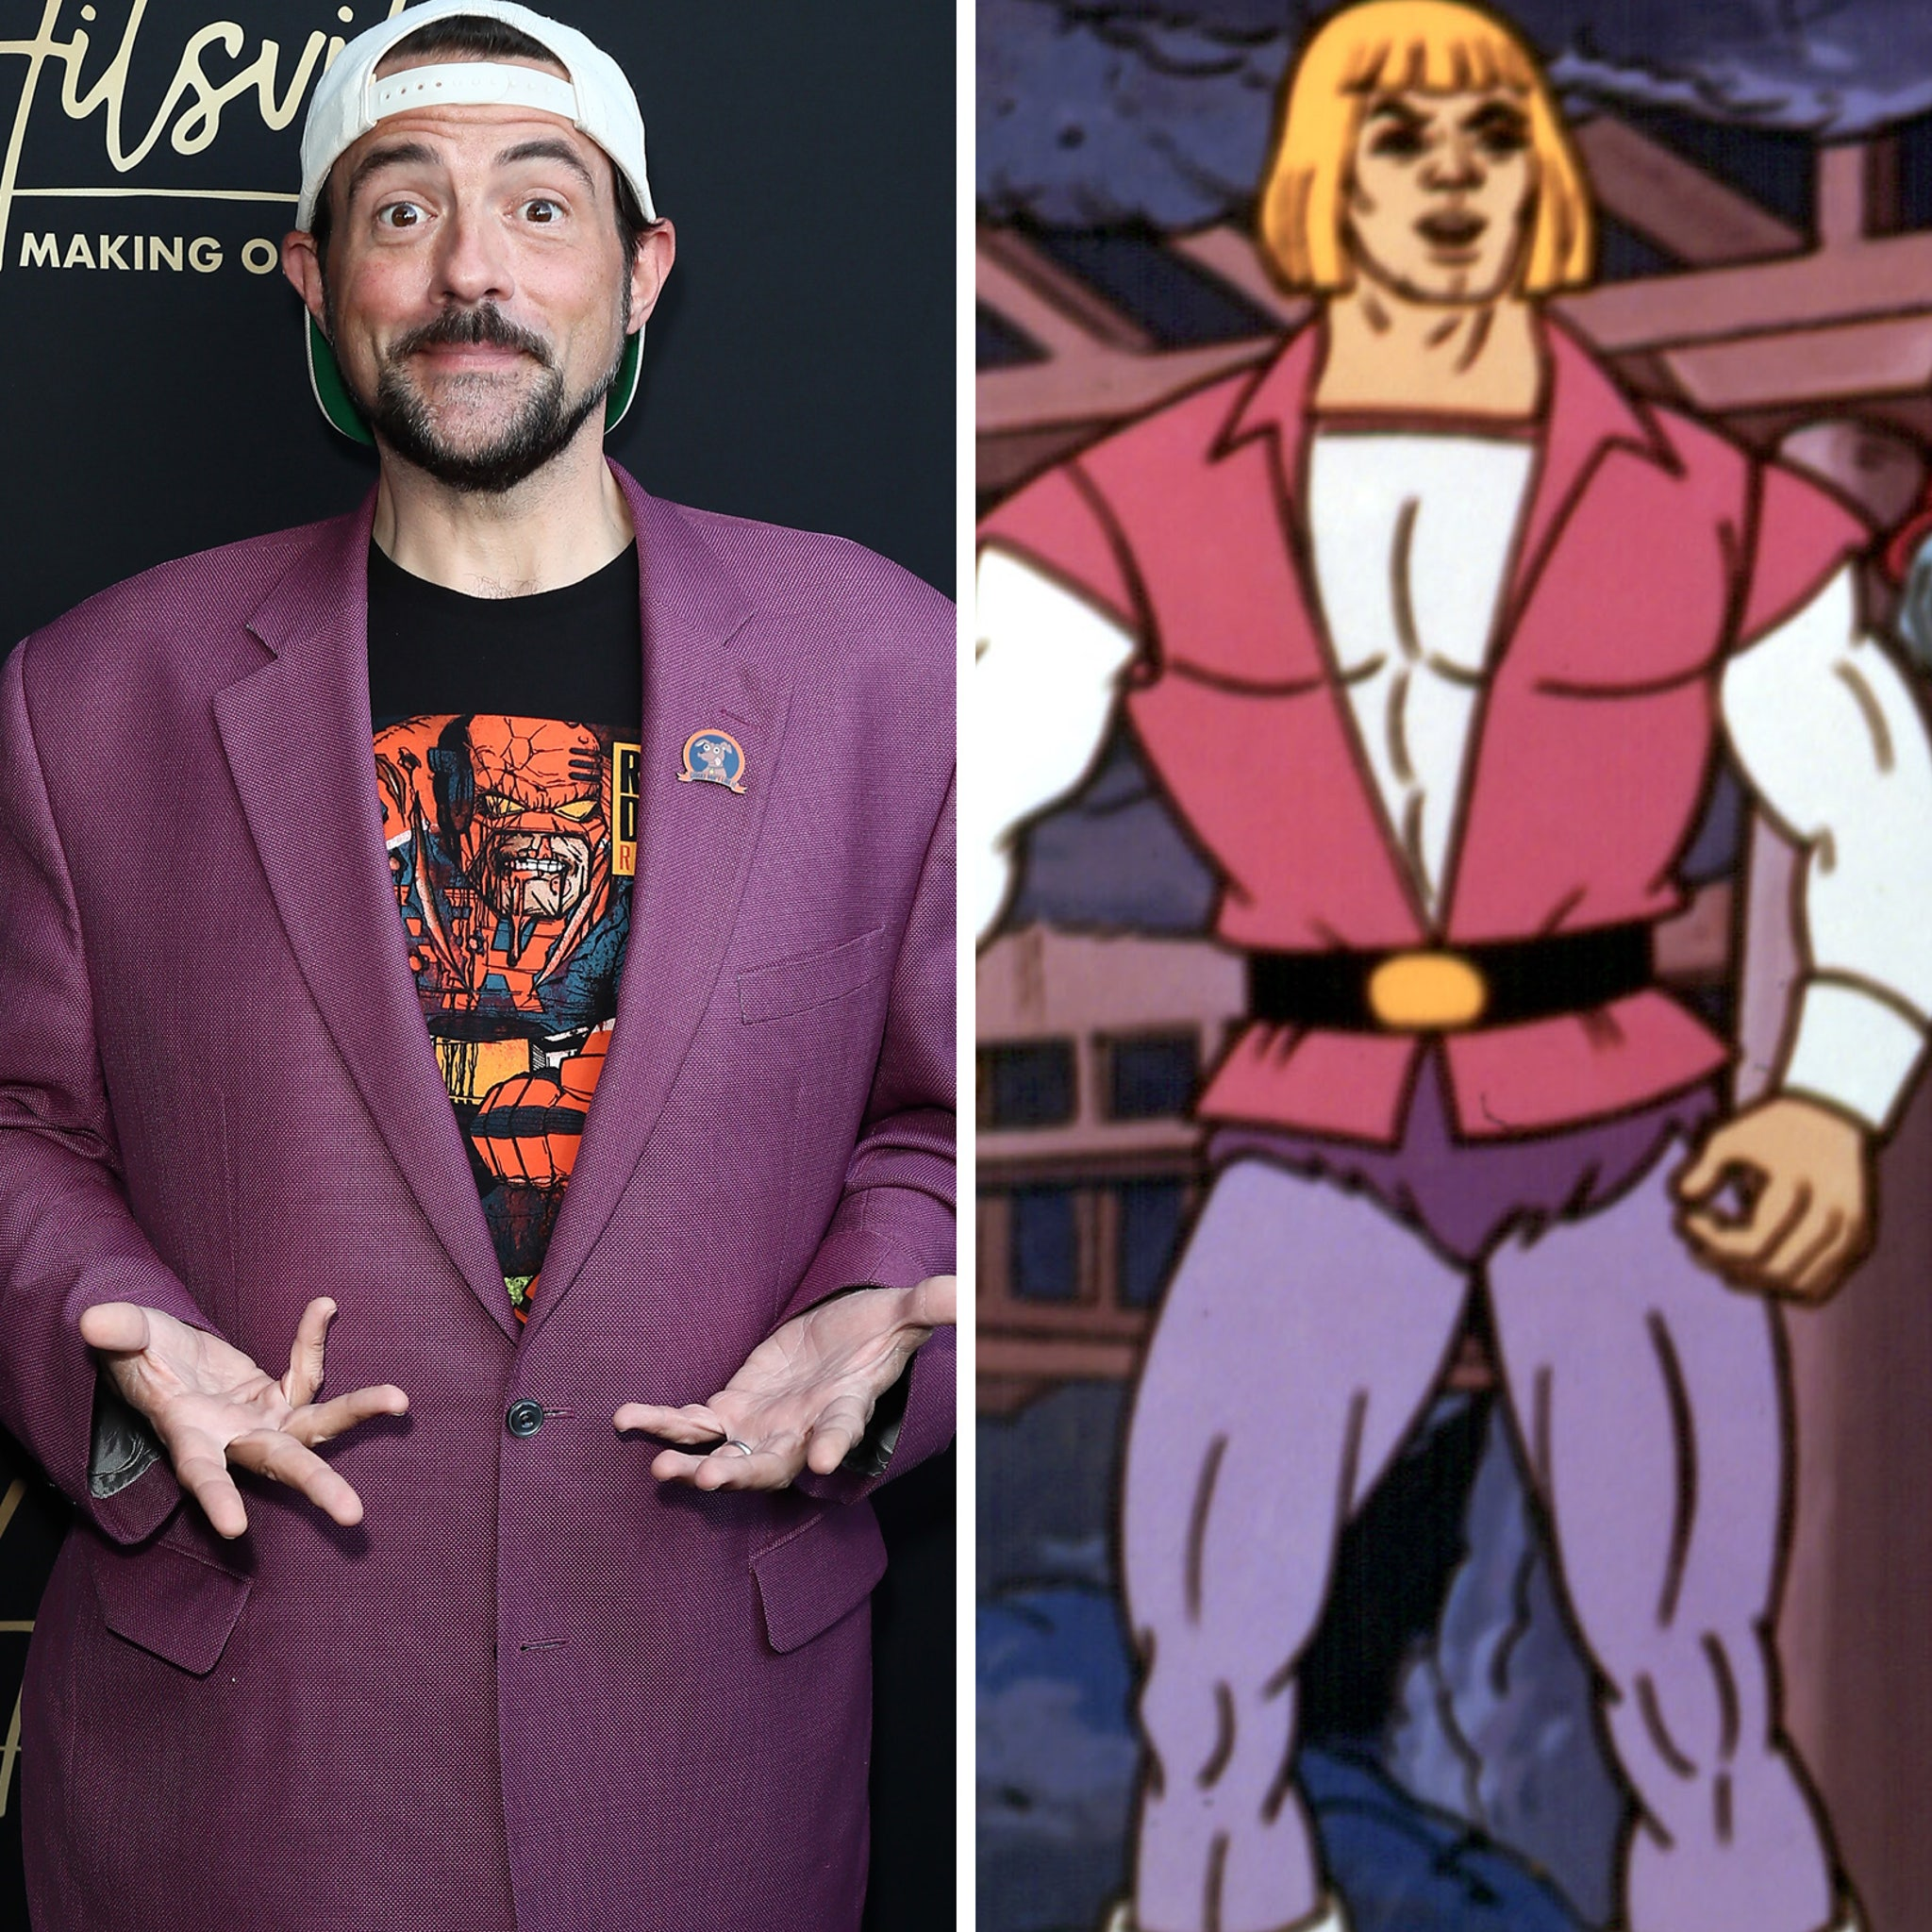 He Man Series Coming To Netflix Via Kevin Smith The best gifs are on giphy. series coming to netflix via kevin smith